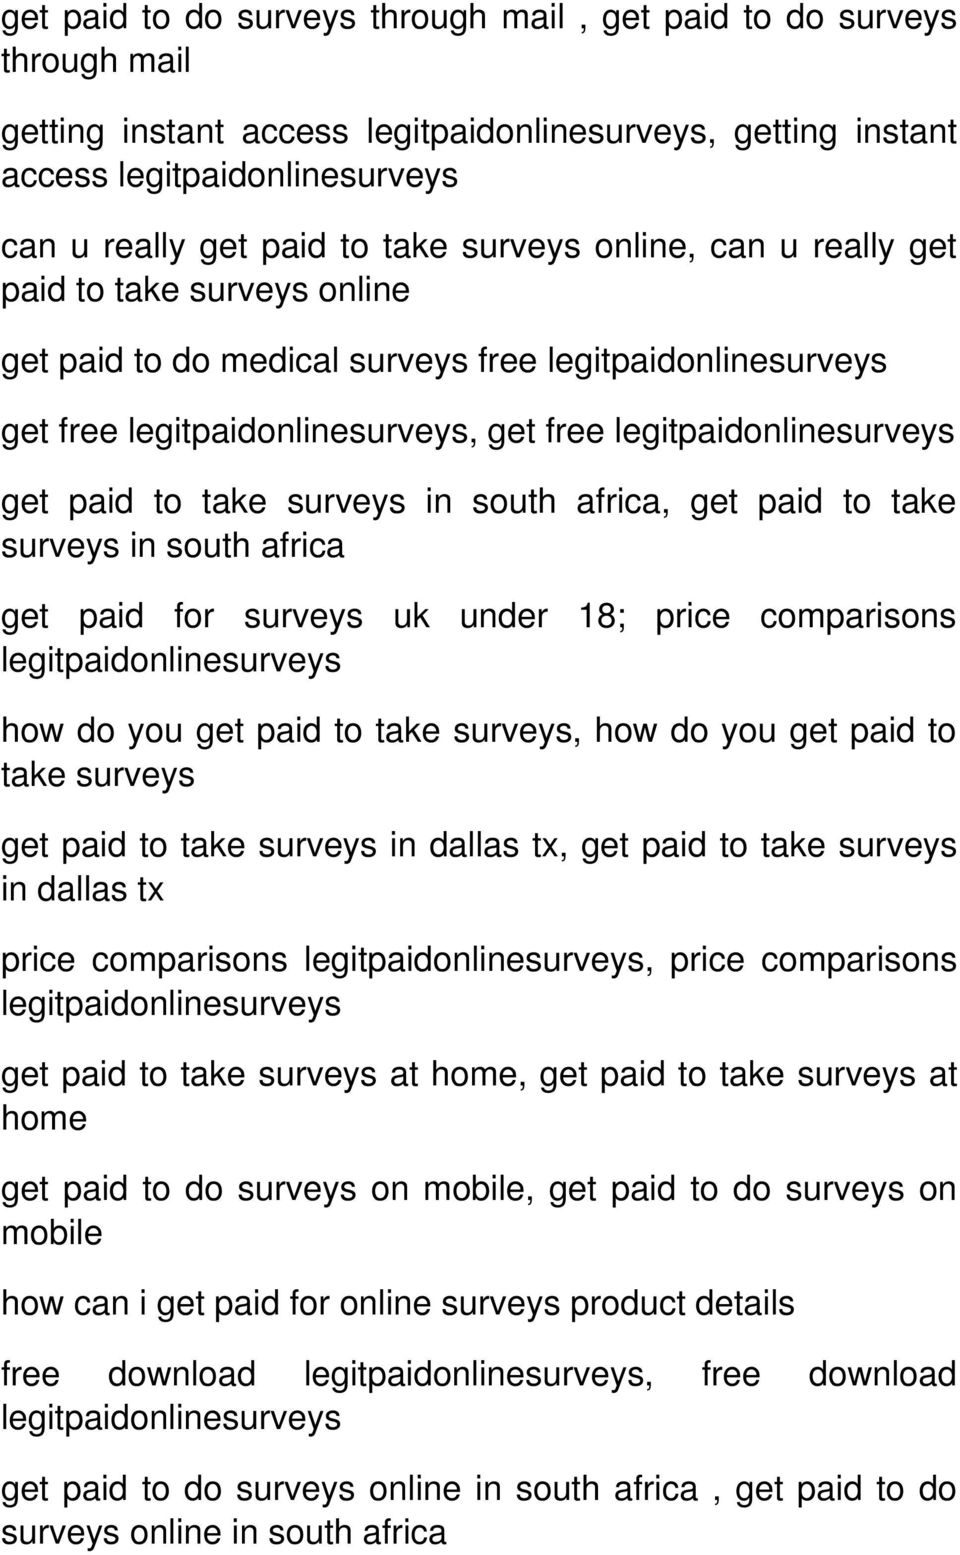 comparisons how do you get paid to take surveys, how do you get paid to take surveys get paid to take surveys in dallas tx, get paid to take surveys in dallas tx price comparisons, price comparisons